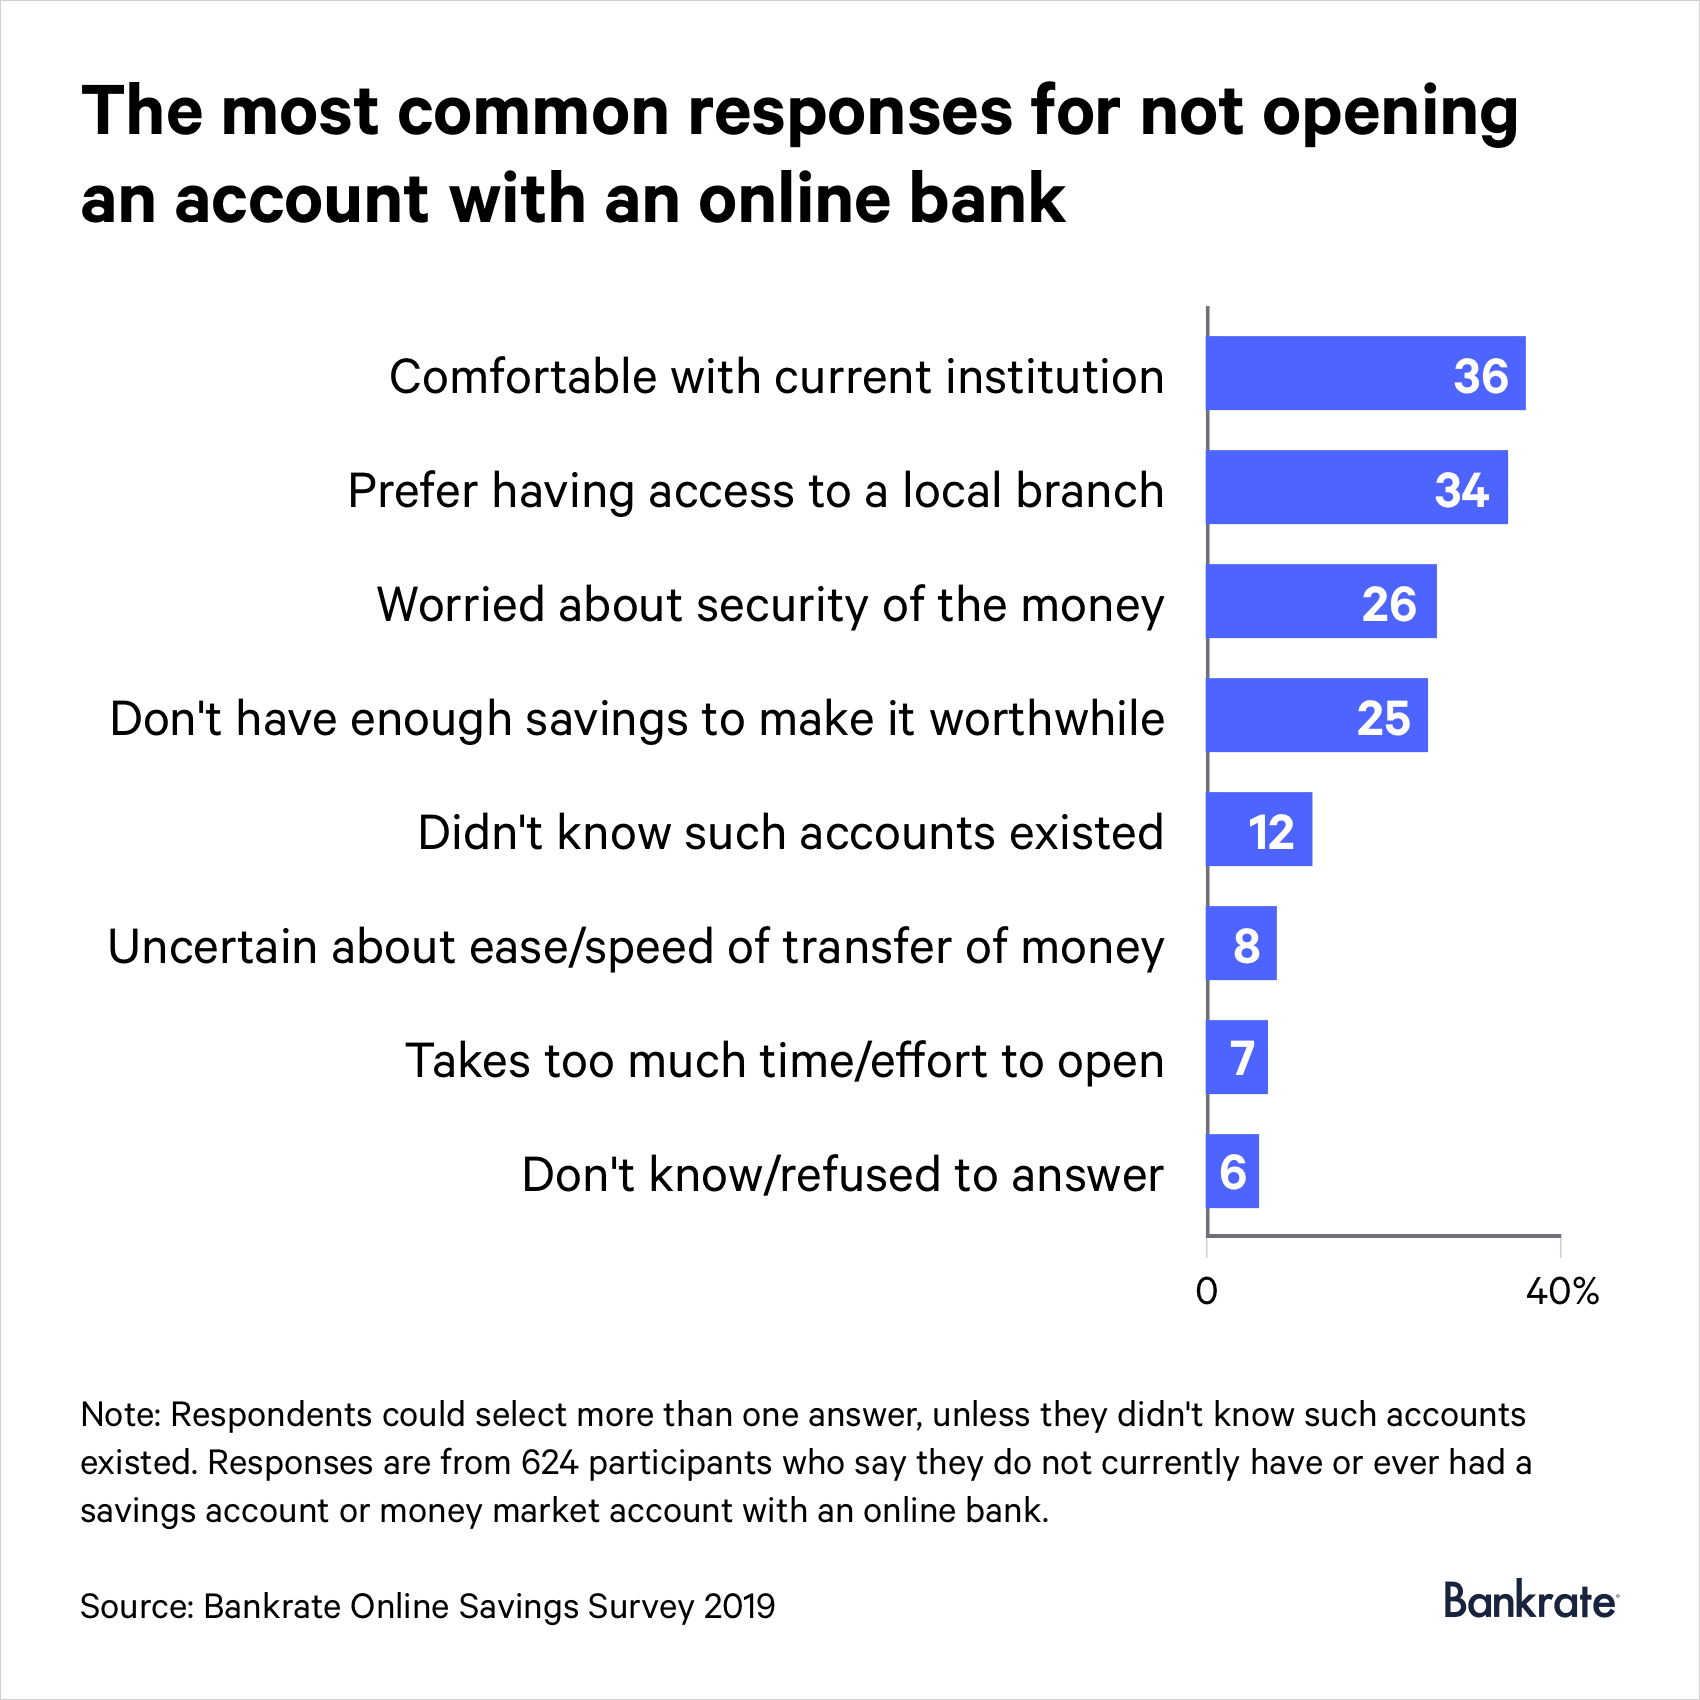 36% of respondents are comfortable with their current institution